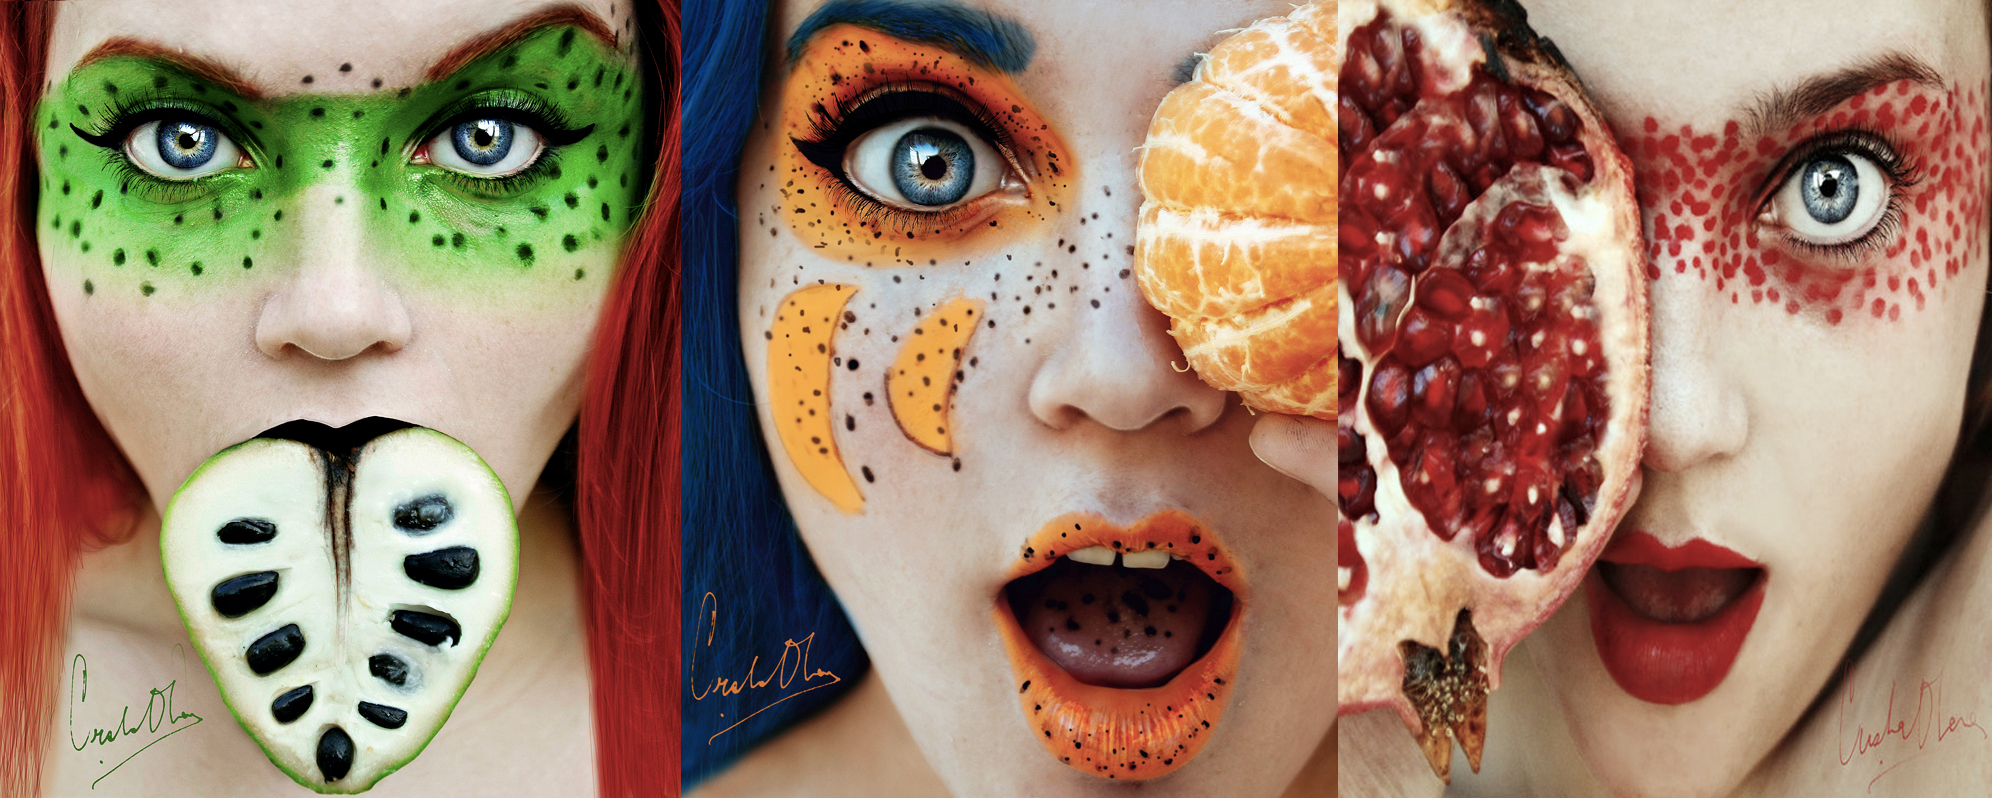 How To Shoot Colorful Self-Portraits With Fruit